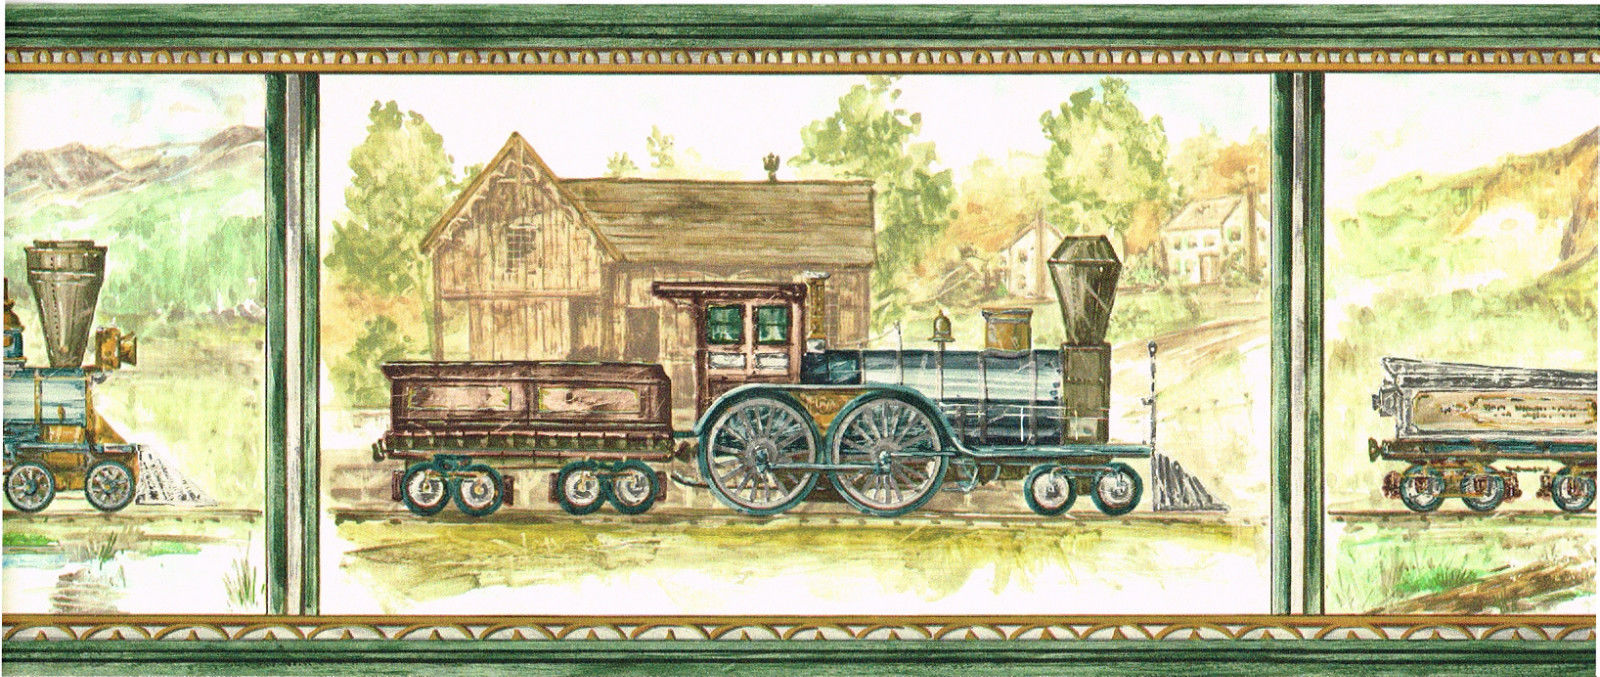 Vintage Antique Locomotive Steam Engine Train Scenic Greenjpg 1600x677